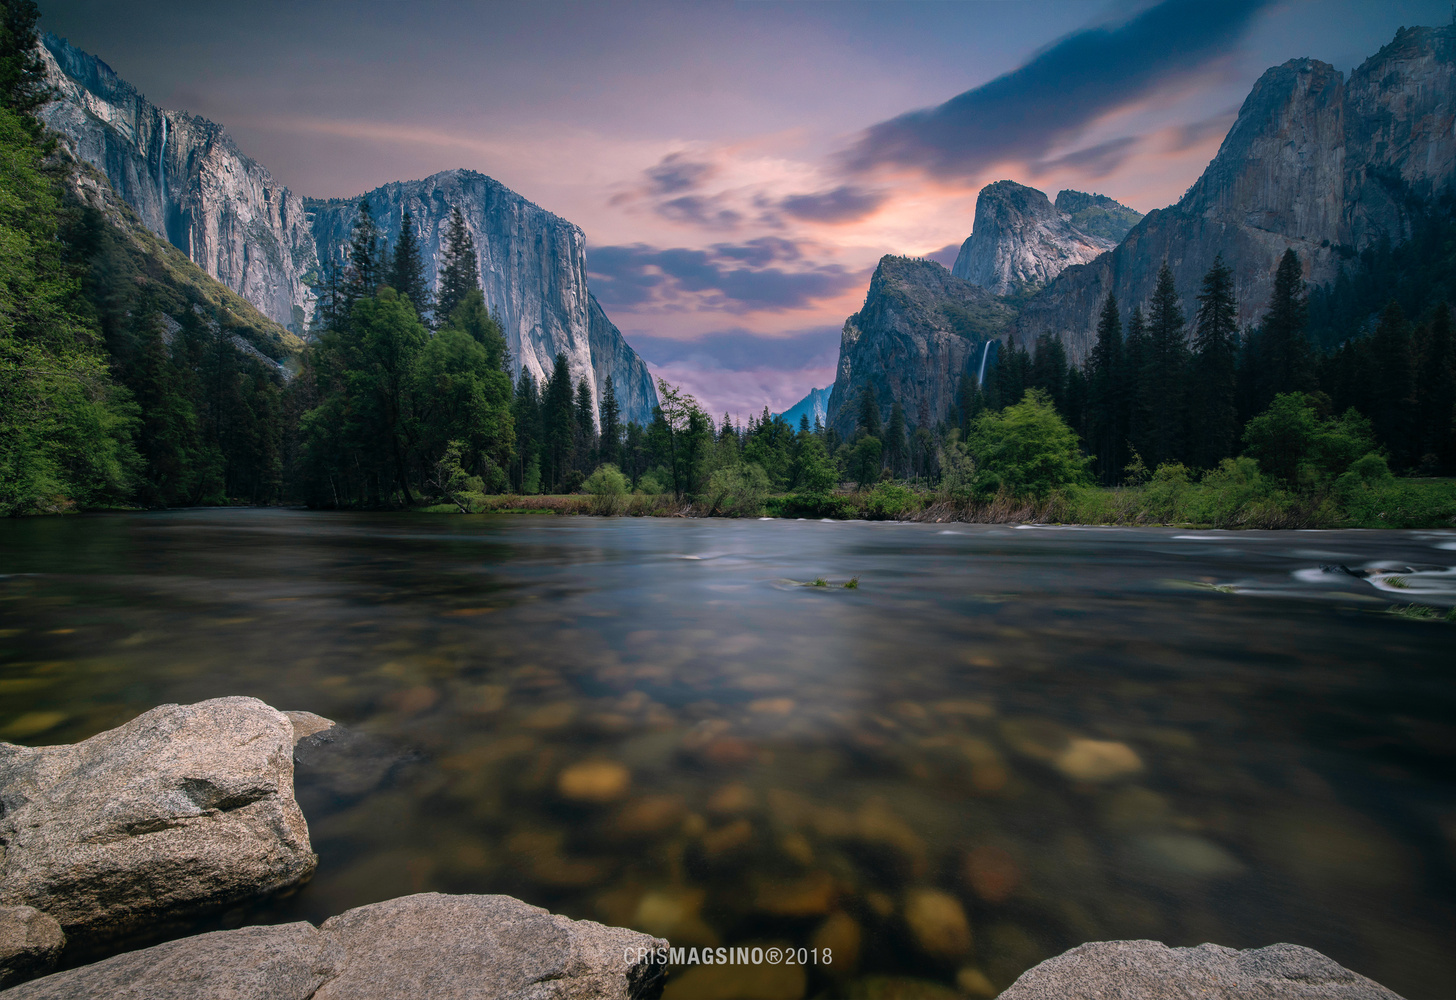 Yosemite River by Cris Magsino